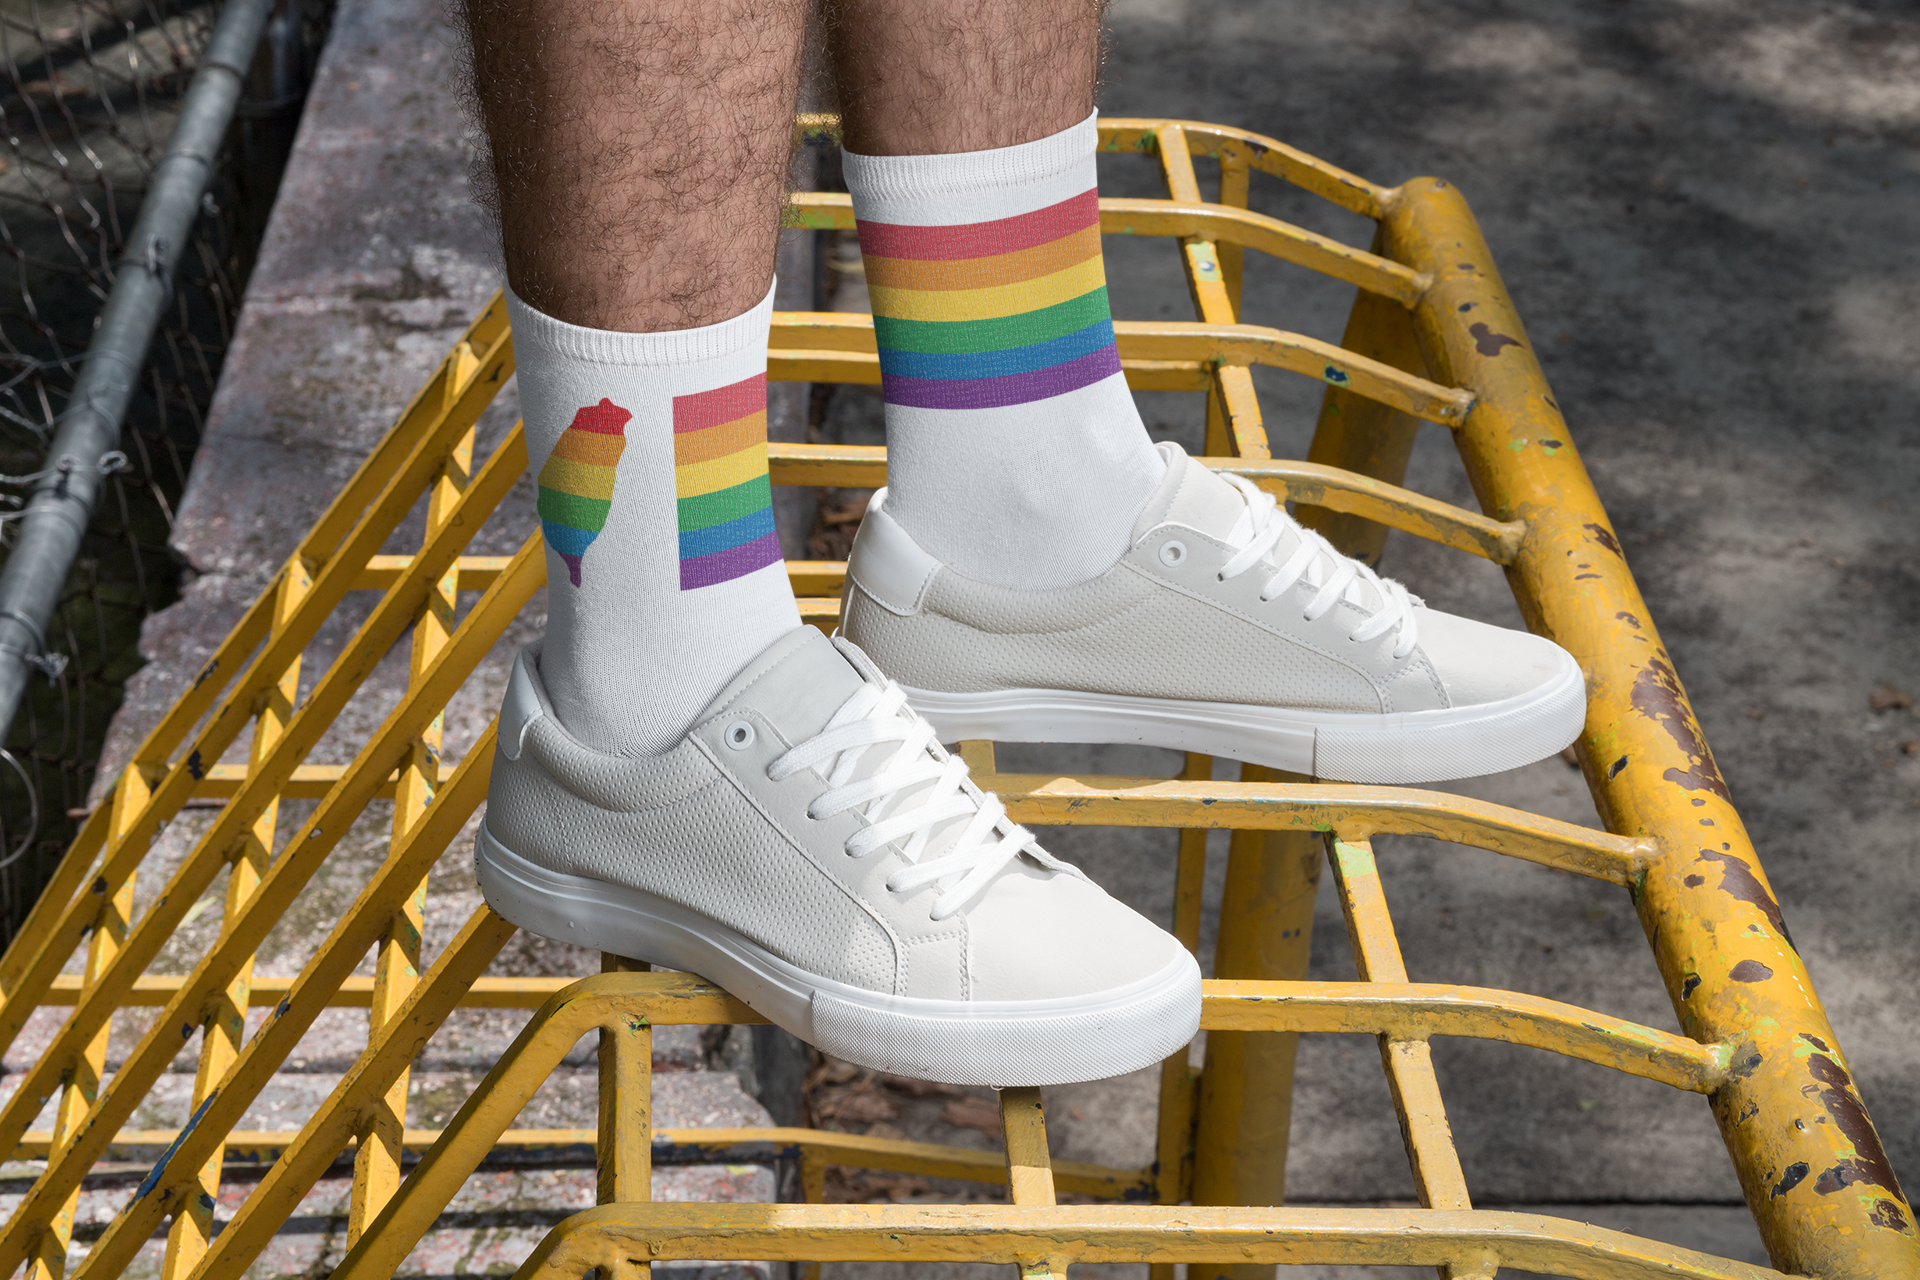 mockup-of-a-man-with-sublimated-long-socks-at-an-urban-scenario-29556 (1).png